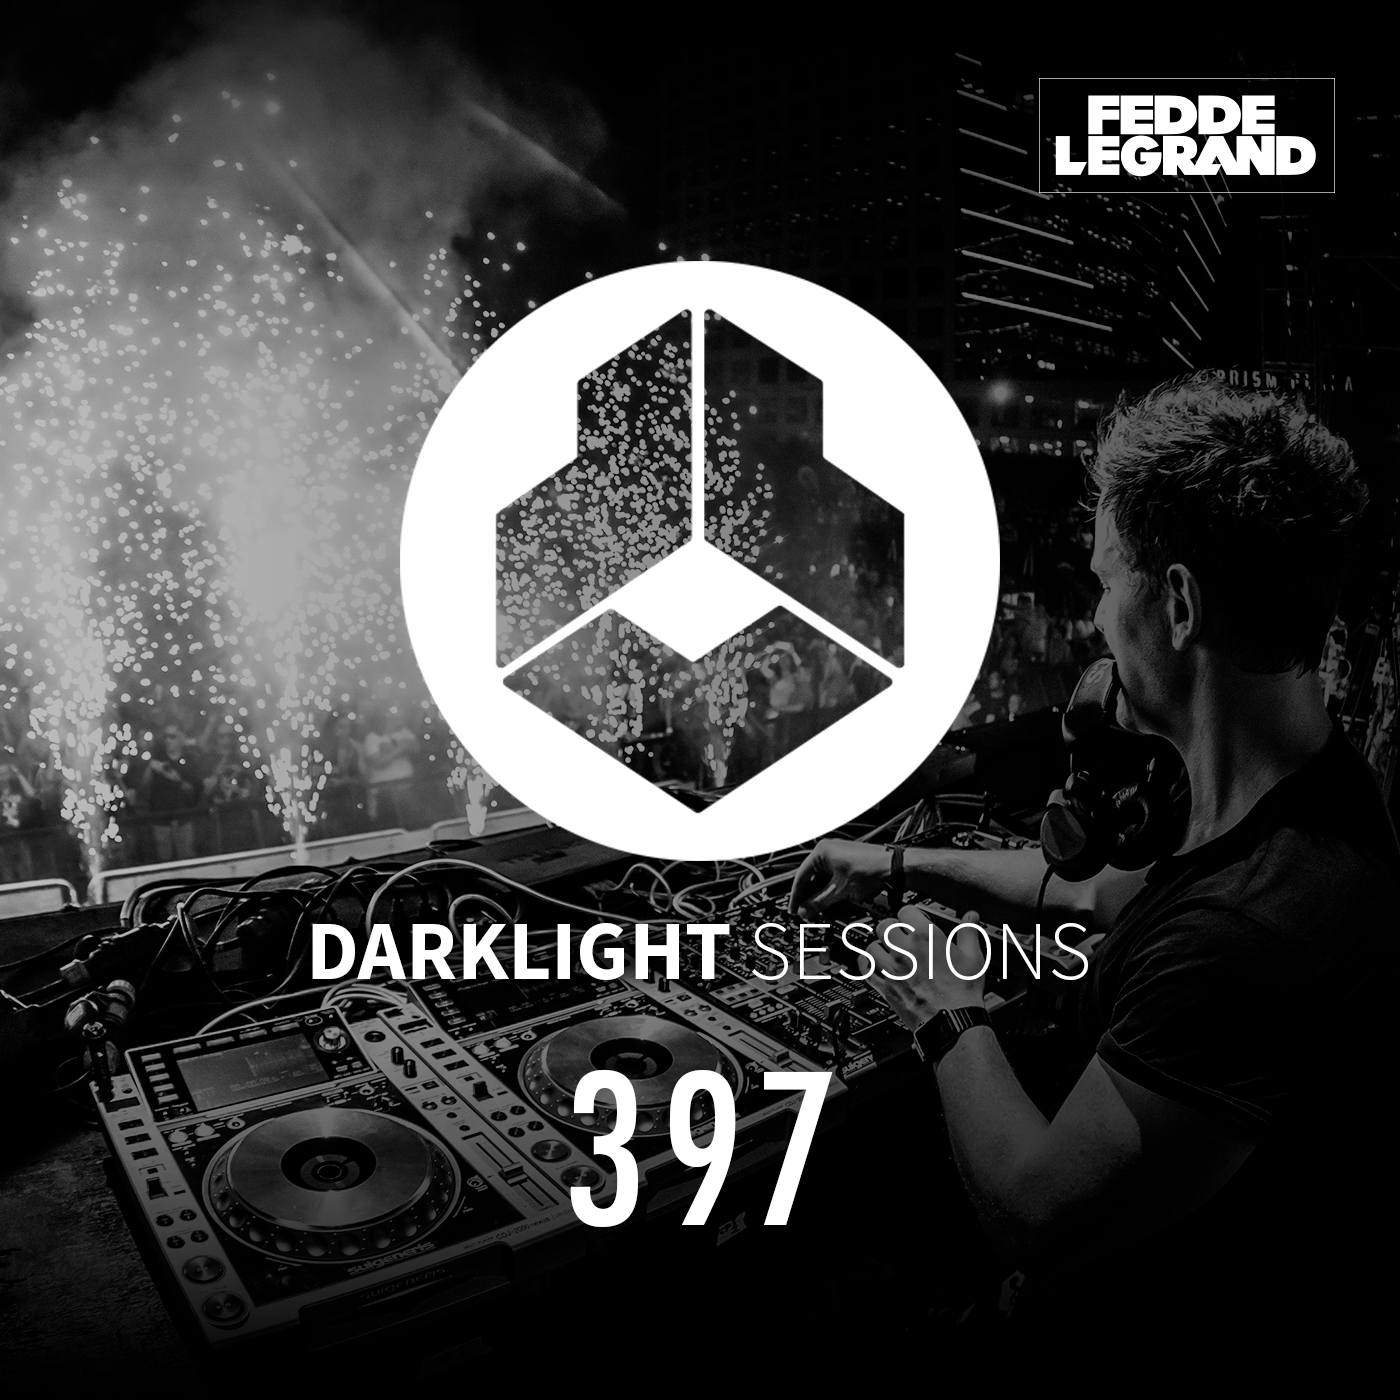 Darklight Sessions 397